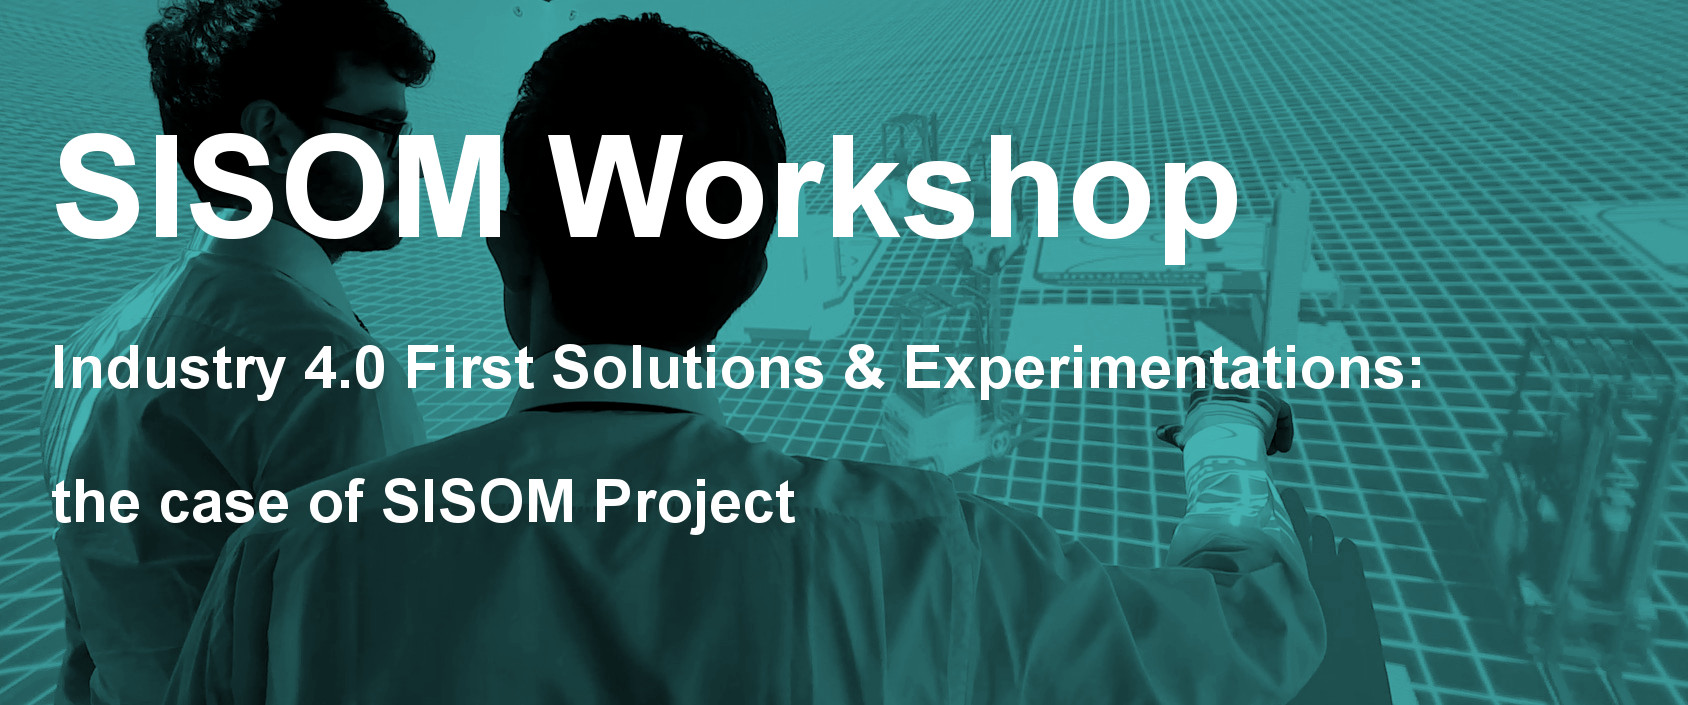 SISOM Workshop